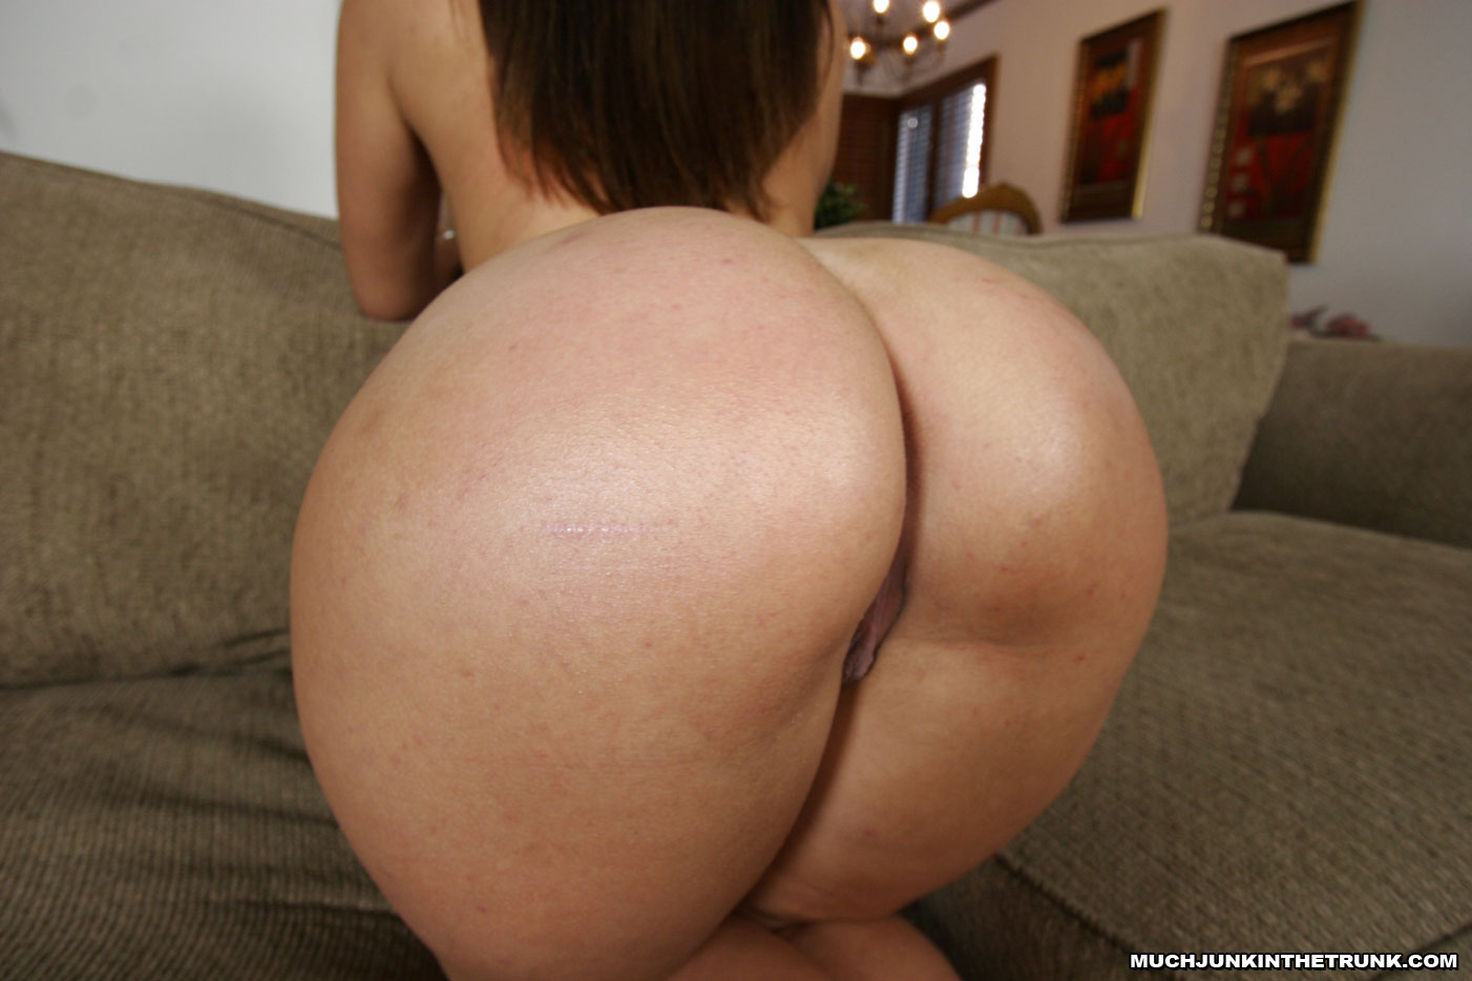 Very sexy ass big ass anal something similar?